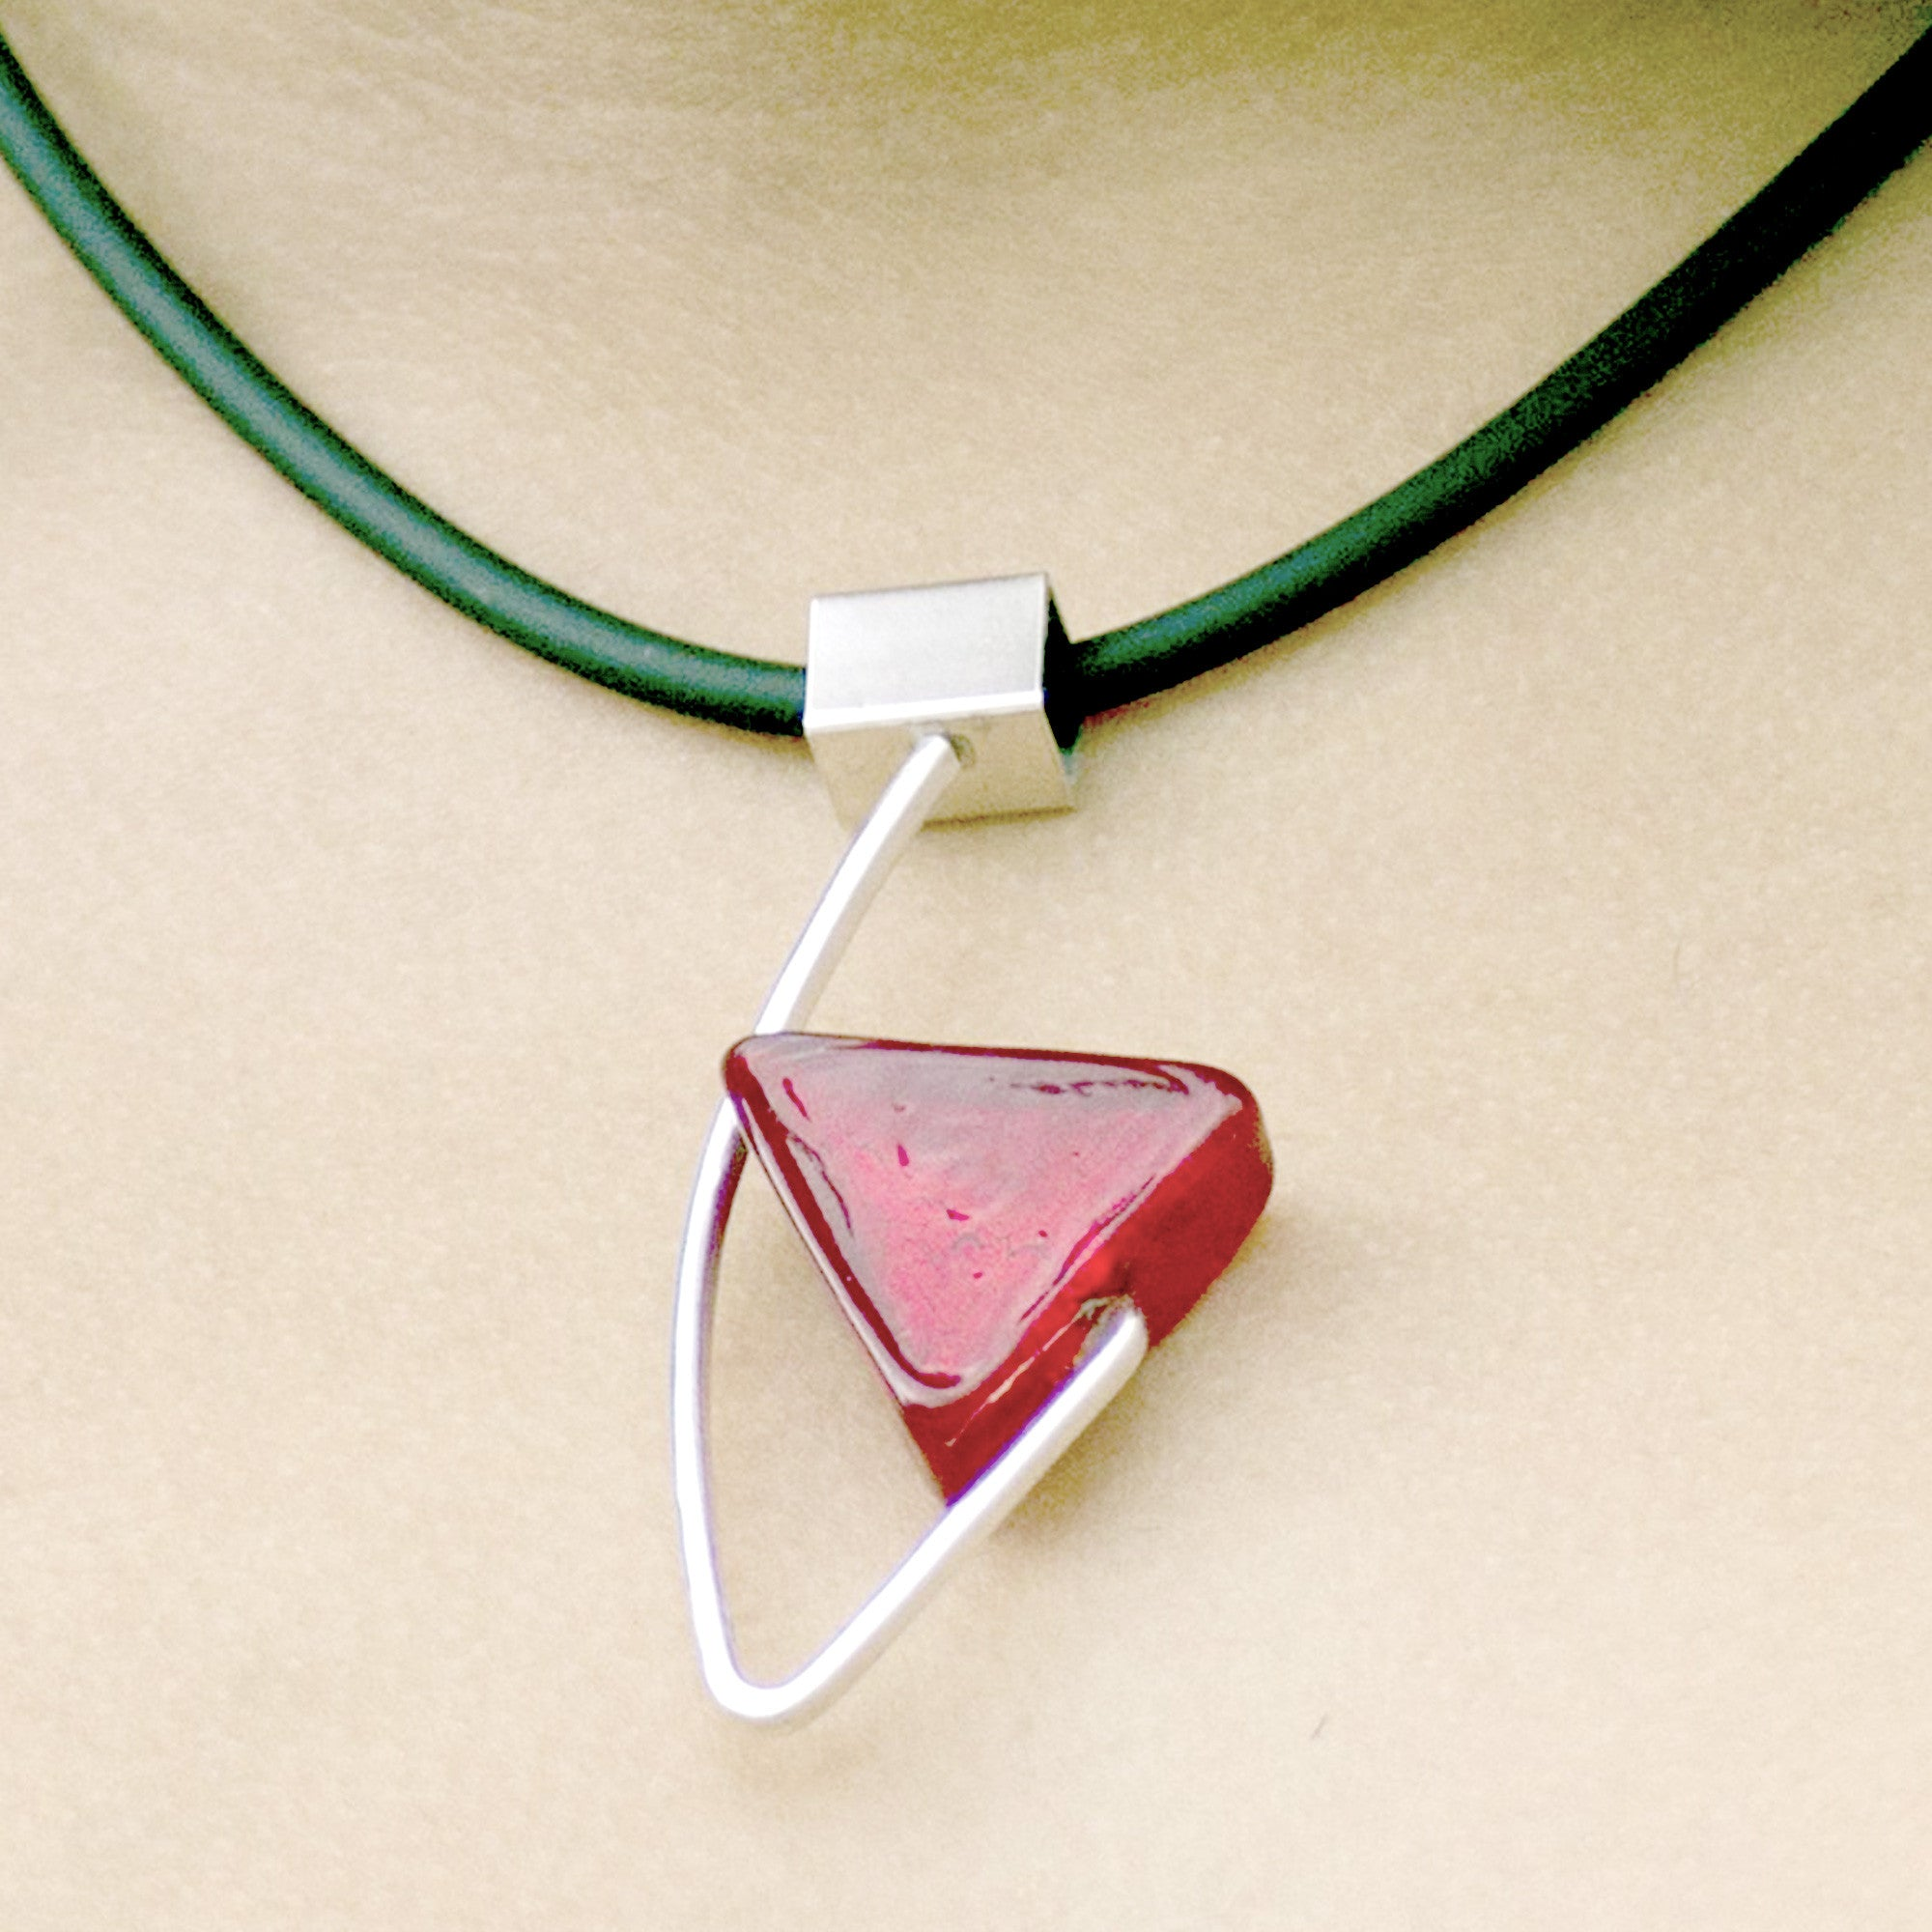 La Foglia D'Oro: Open Triangle Murano Glass & Silver Necklace - Red